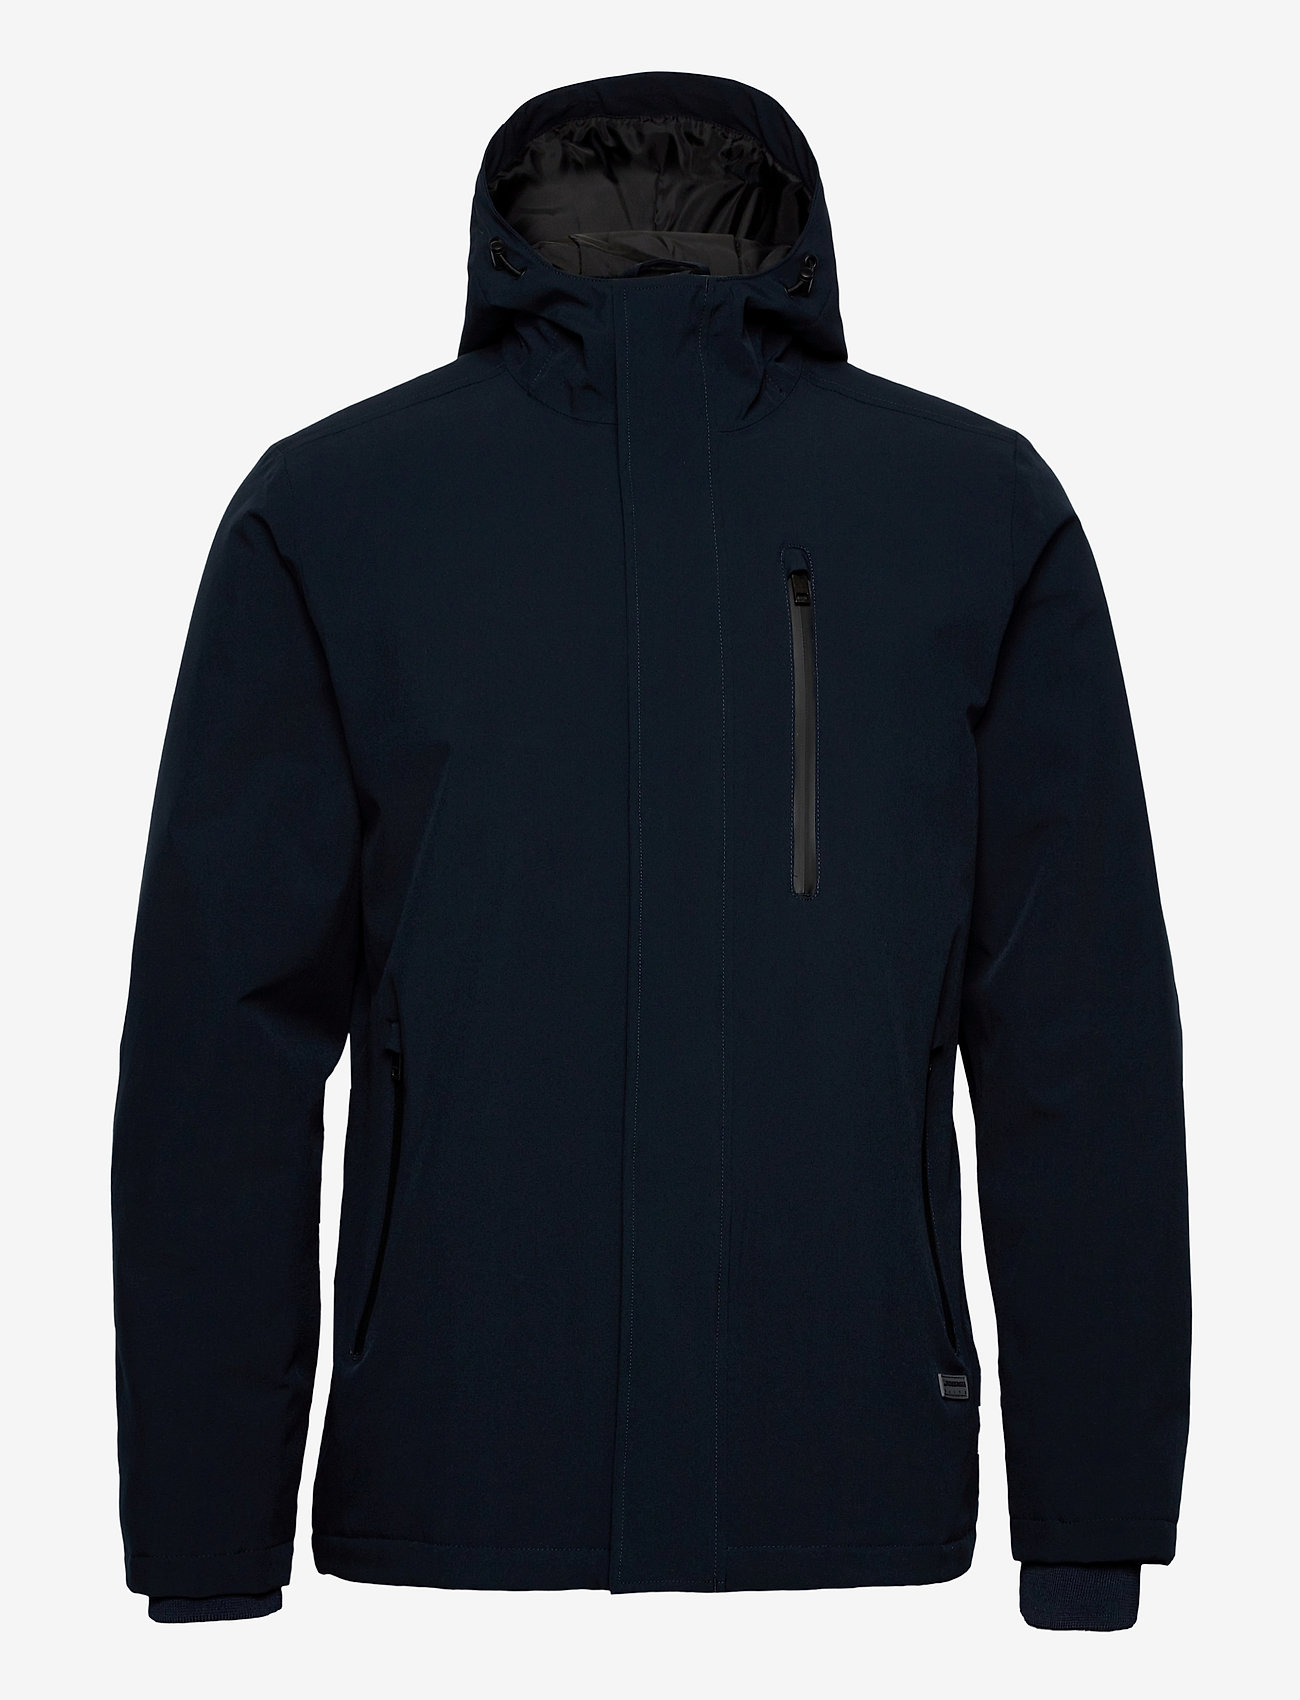 Lindbergh - Technical jacket - kevyet takit - navy - 1